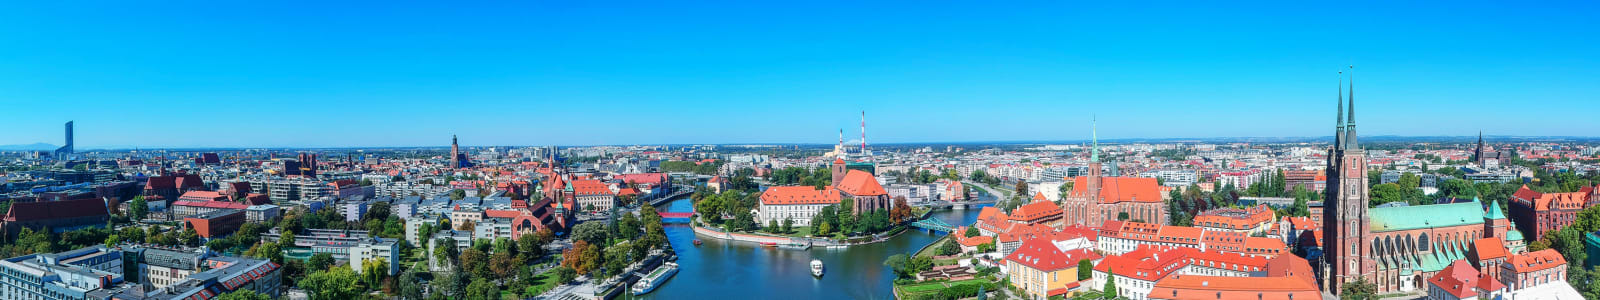 Panorama of Wroclaw, Poland